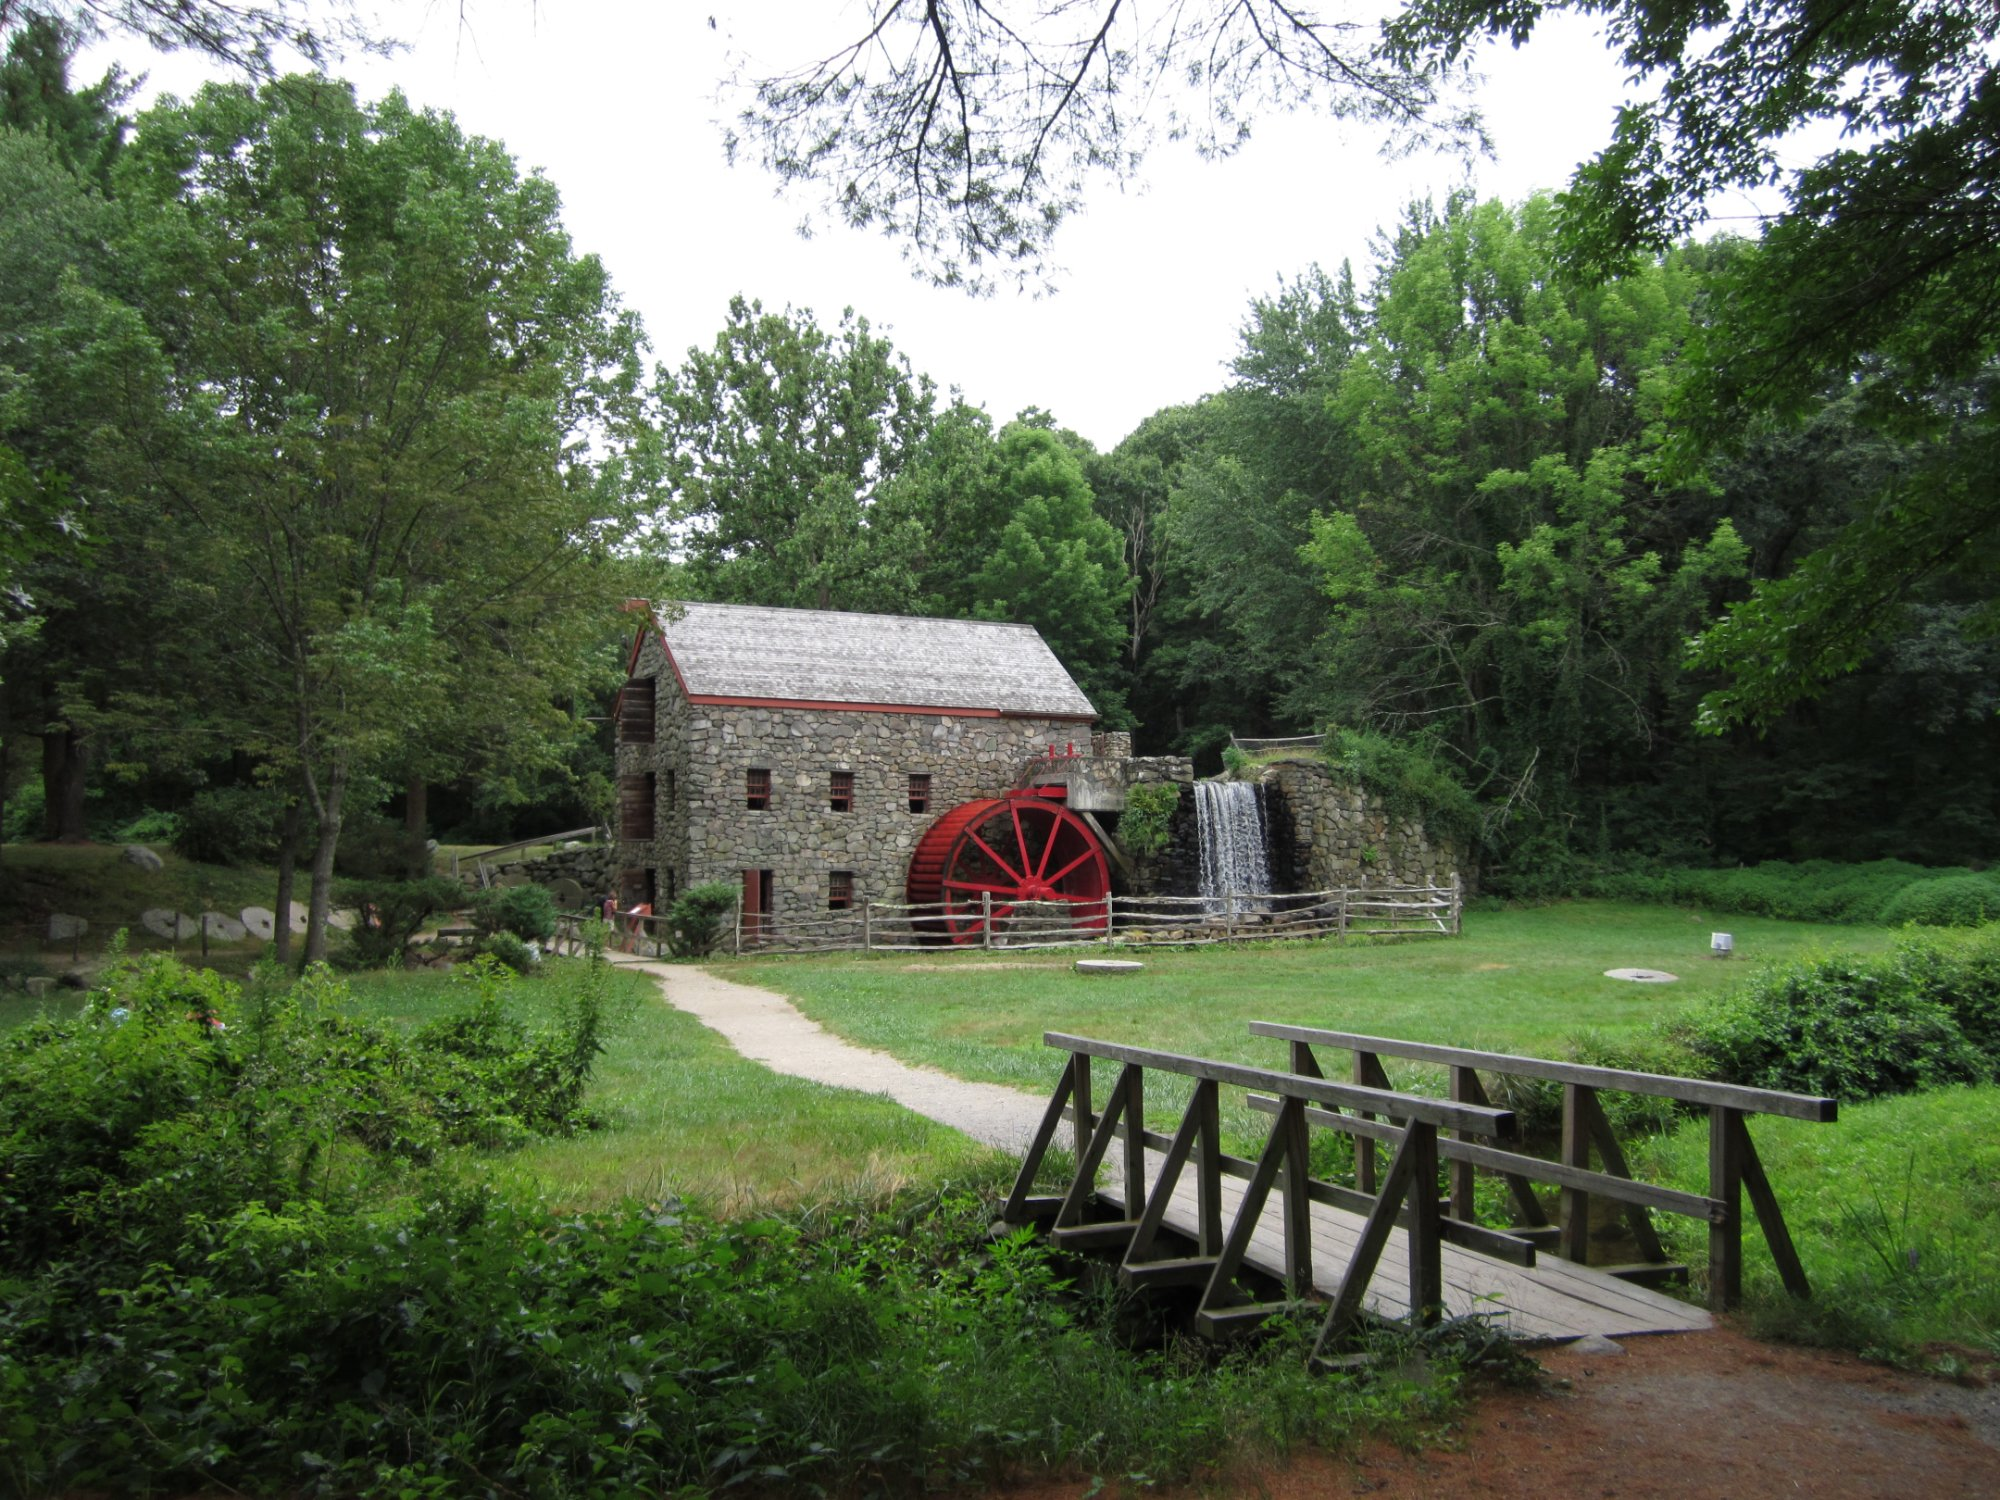 Gristmill at Historic Longfellow's Wayside Inn, Sudbury, Massachusetts